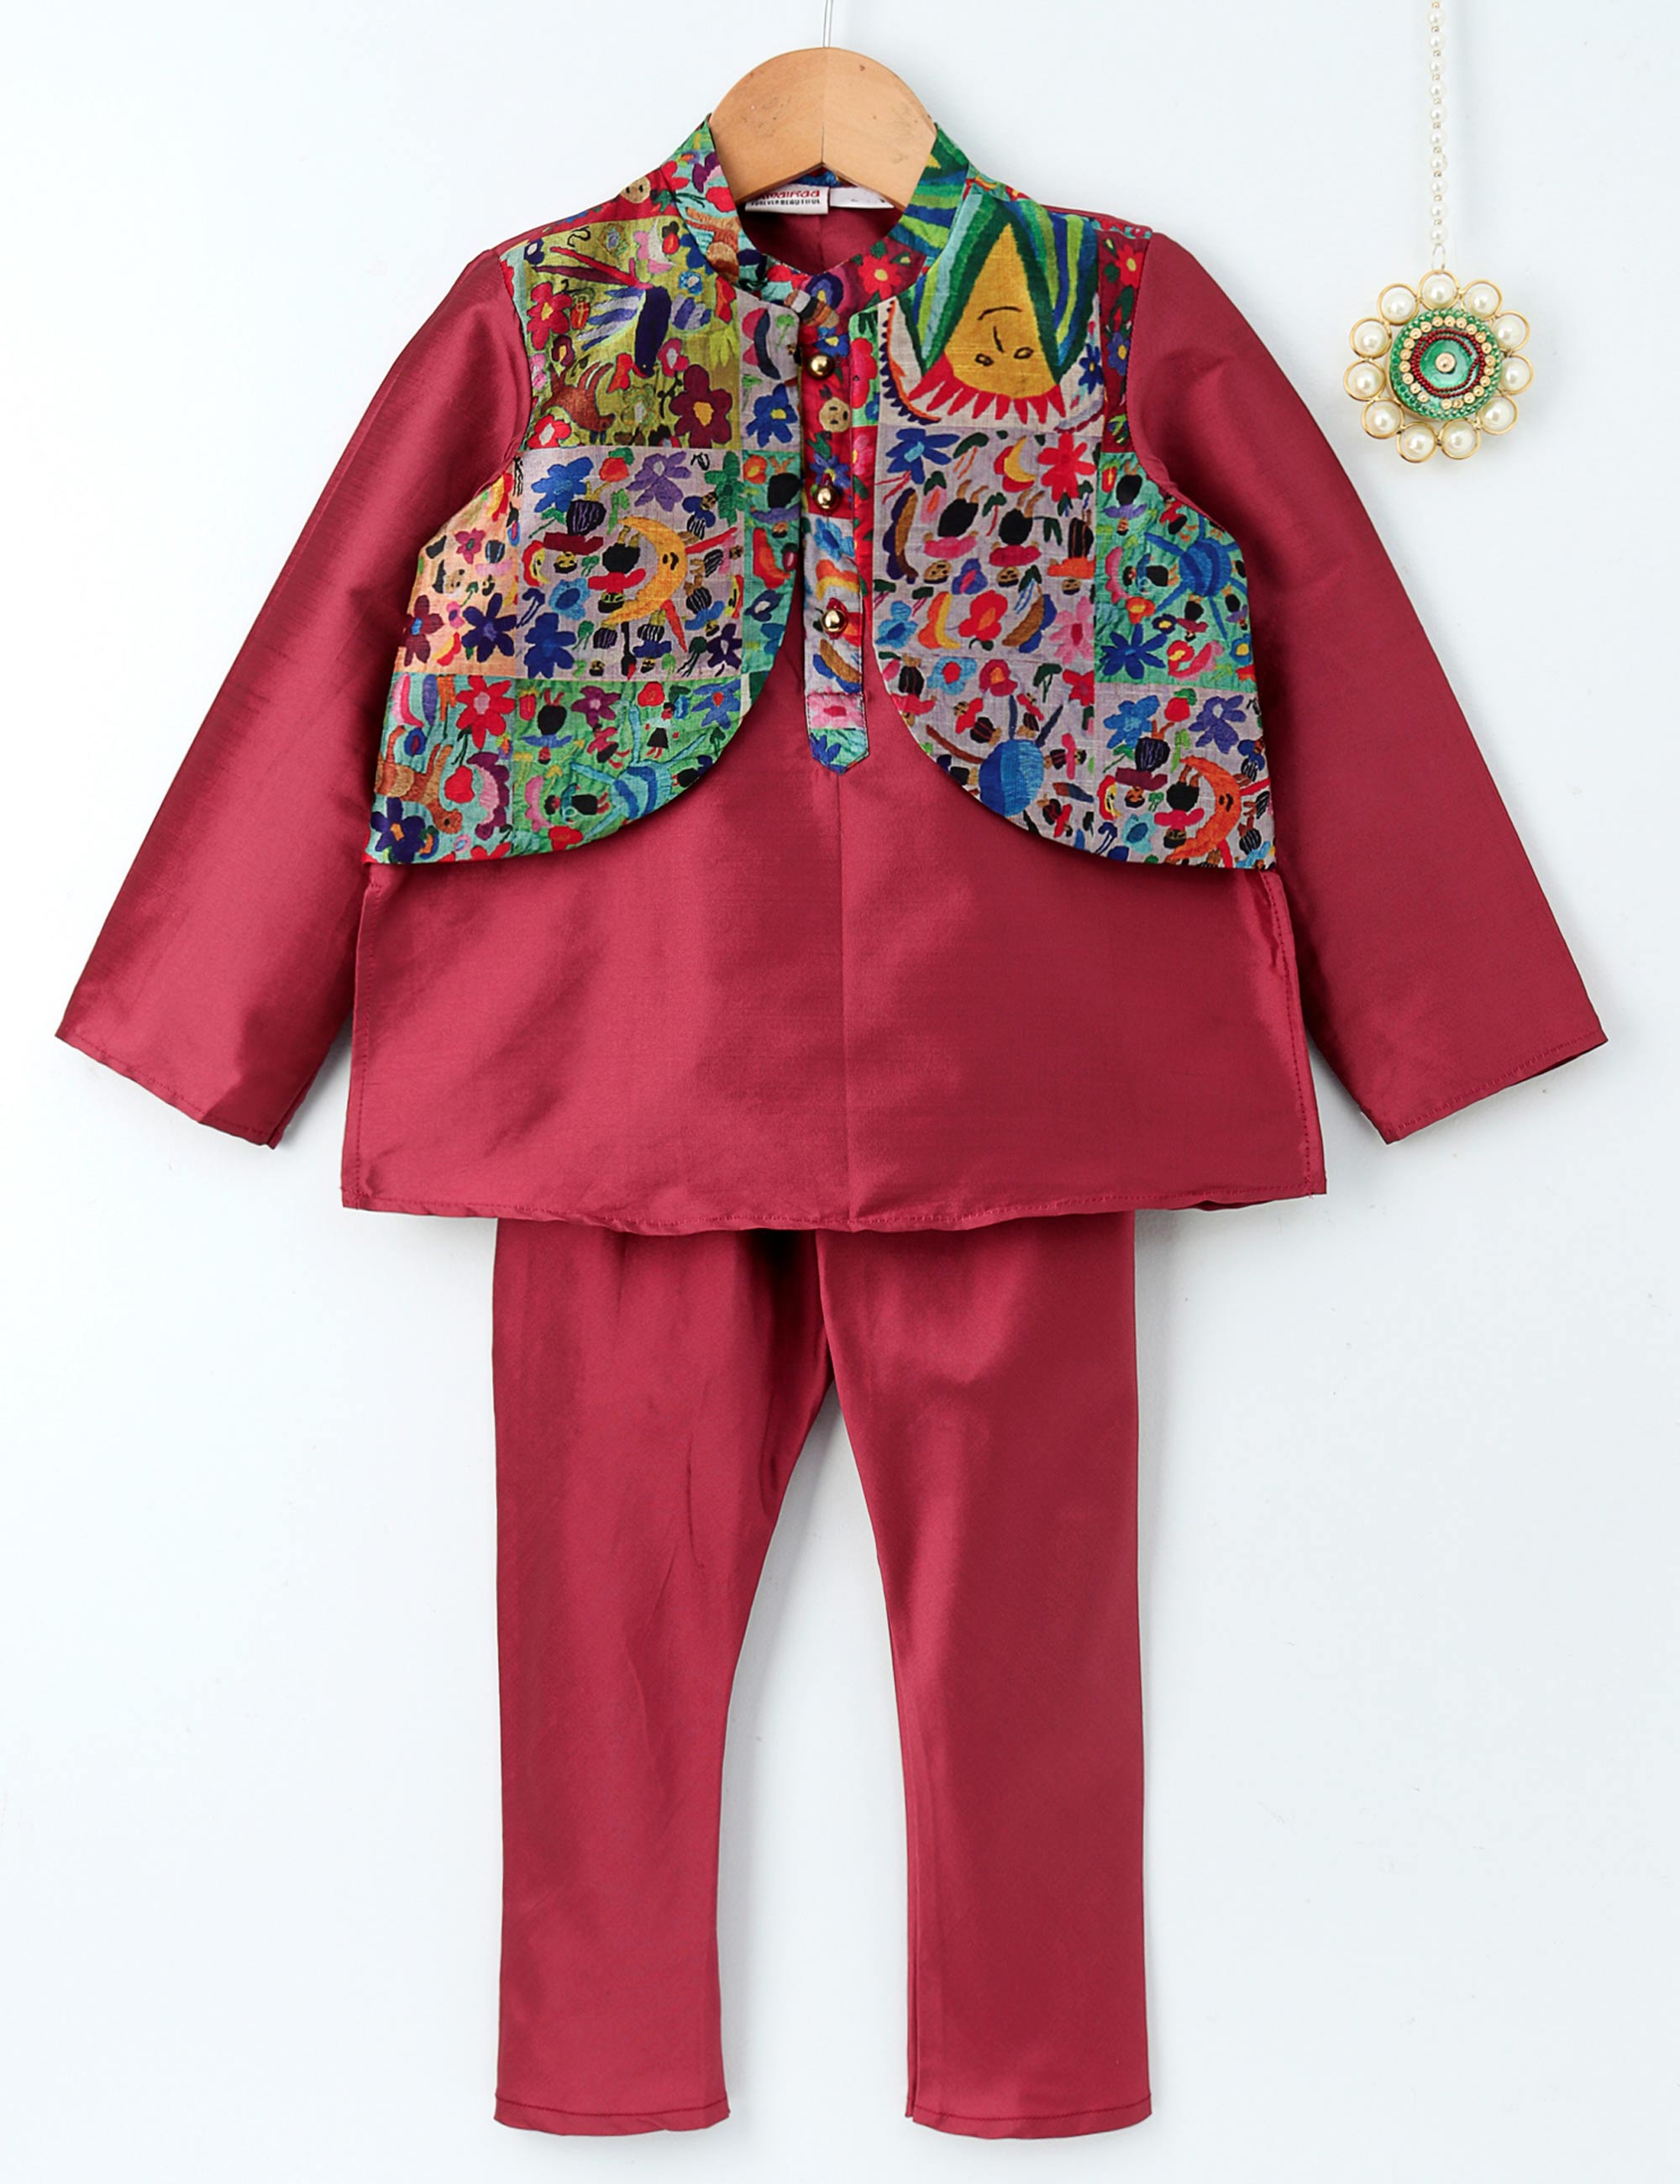 Prestitched Jacket for Boys